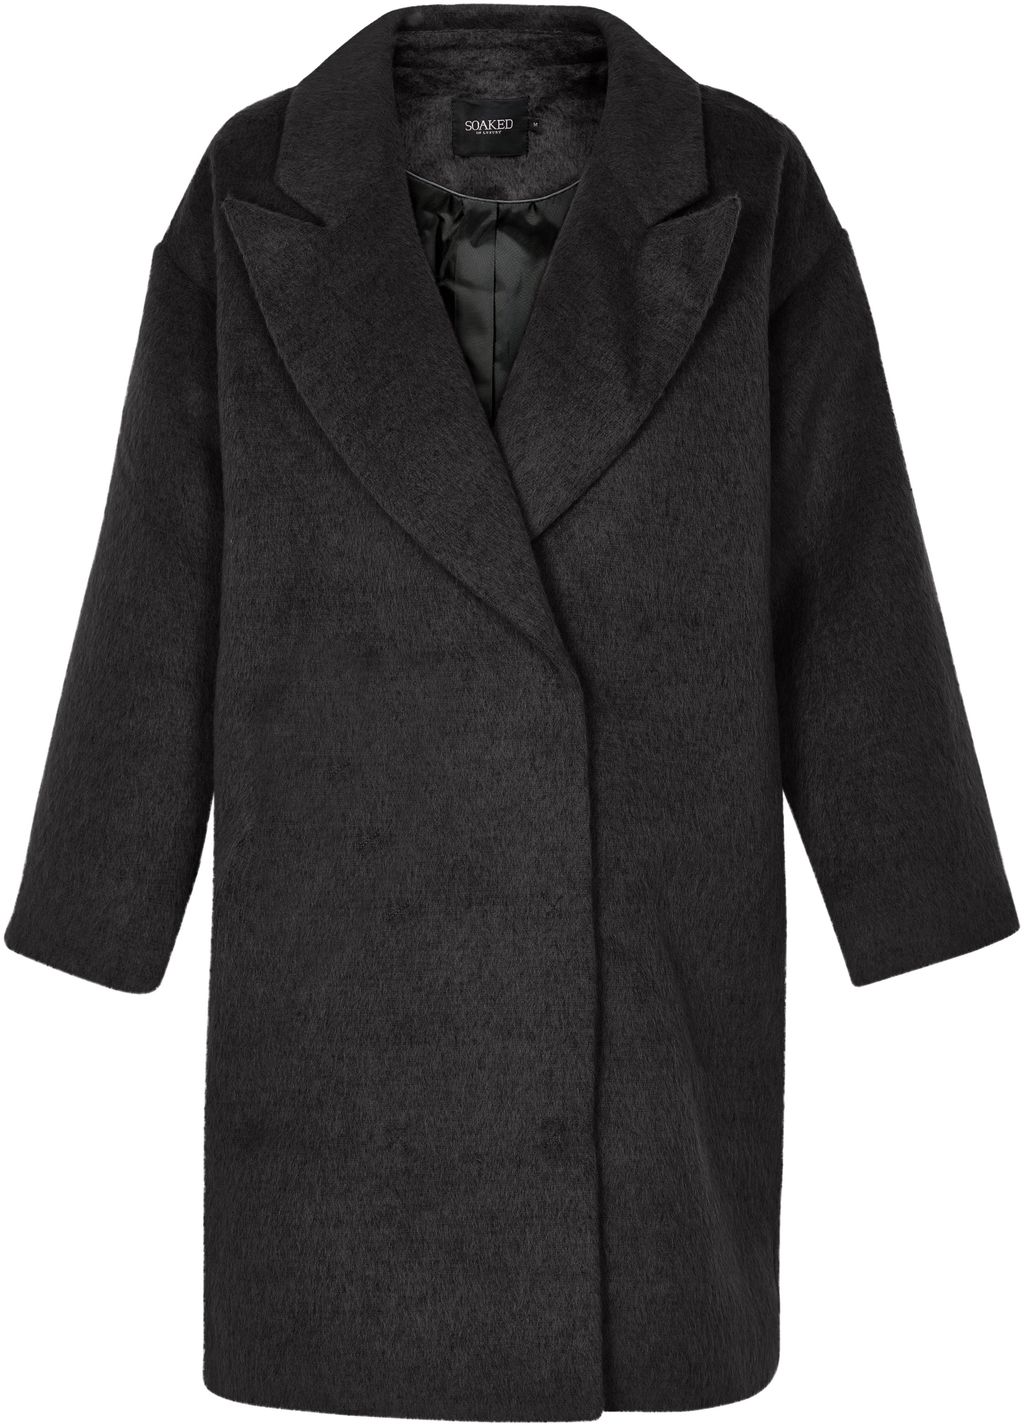 Oversized Coat, Black - pattern: plain; fit: loose; style: single breasted; collar: standard lapel/rever collar; length: mid thigh; predominant colour: black; occasions: casual, creative work; fibres: wool - mix; sleeve length: long sleeve; sleeve style: standard; collar break: medium; pattern type: fabric; texture group: woven bulky/heavy; wardrobe: basic; season: a/w 2016; trends: oversized outerwear